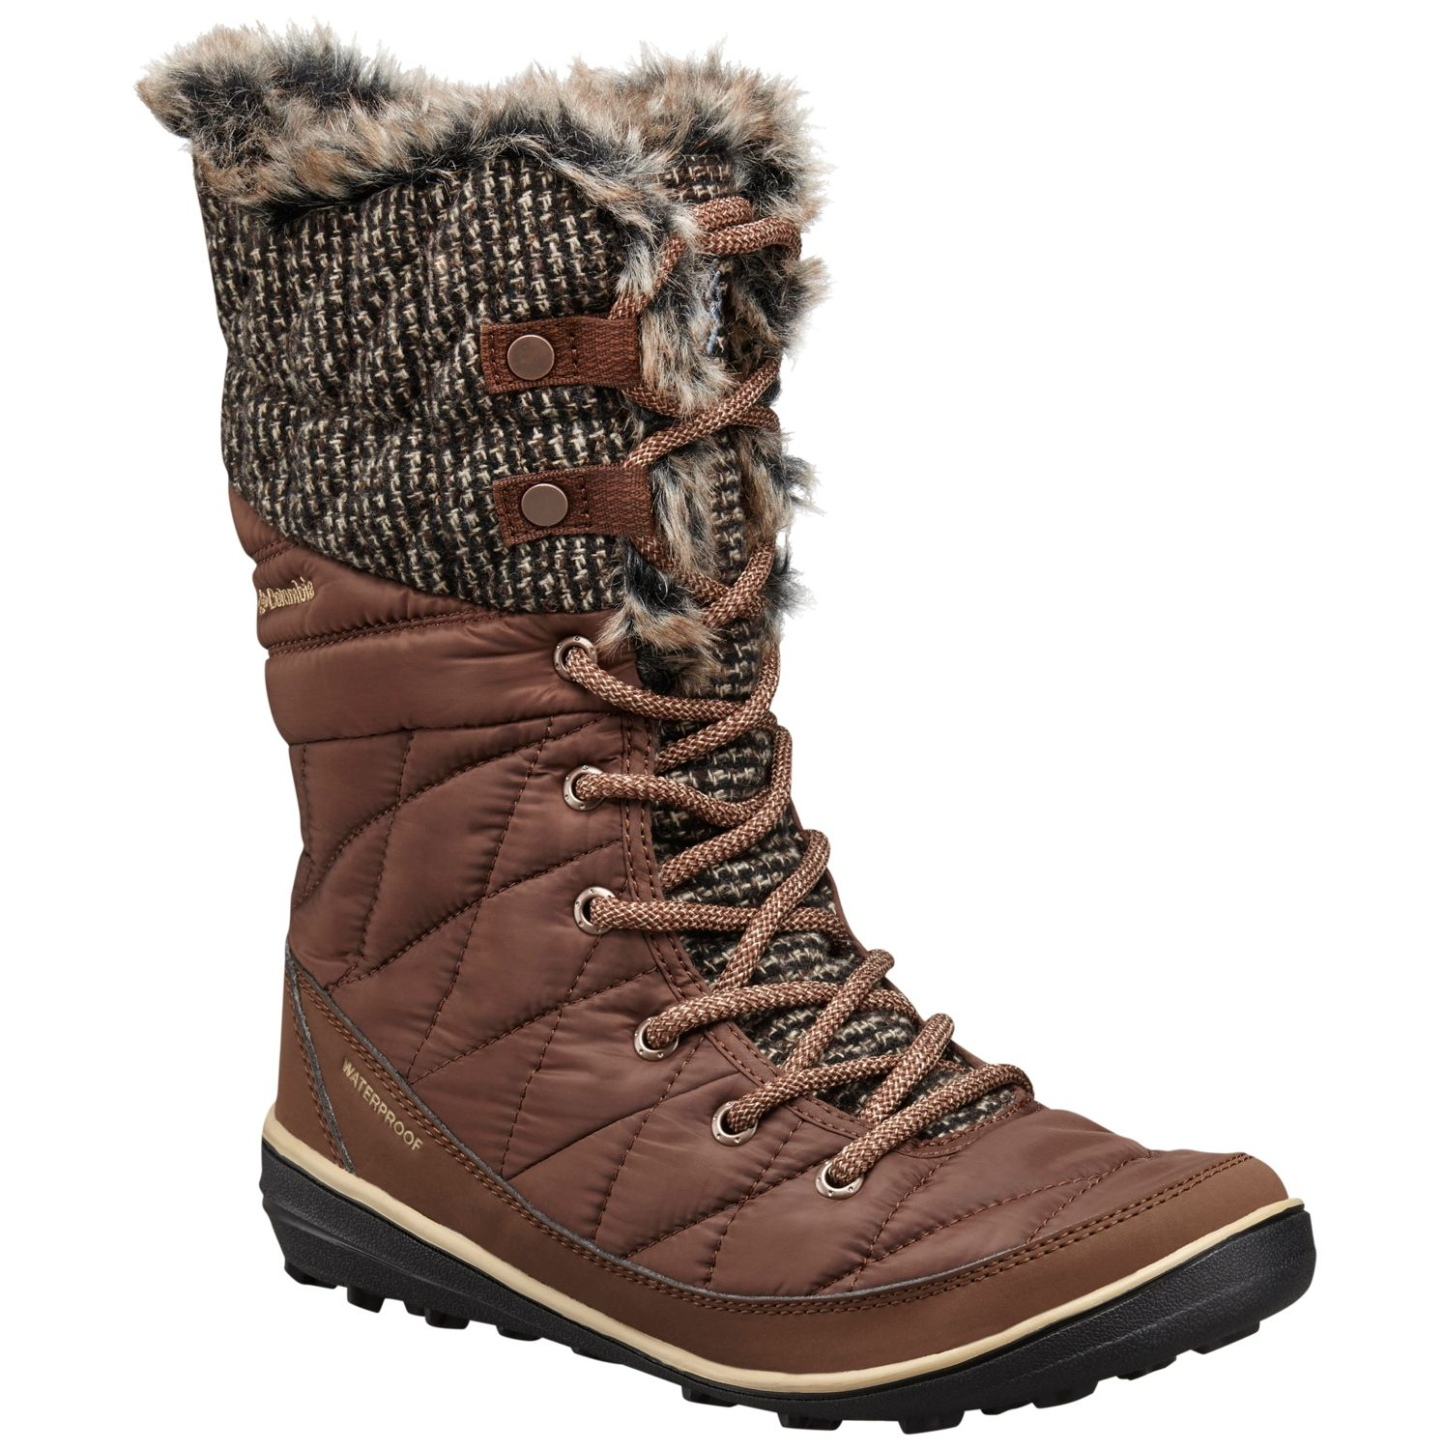 Columbia Women's Heavenly Omni-heat Knit Winter Boots Tobacco, Dark Mirage-30